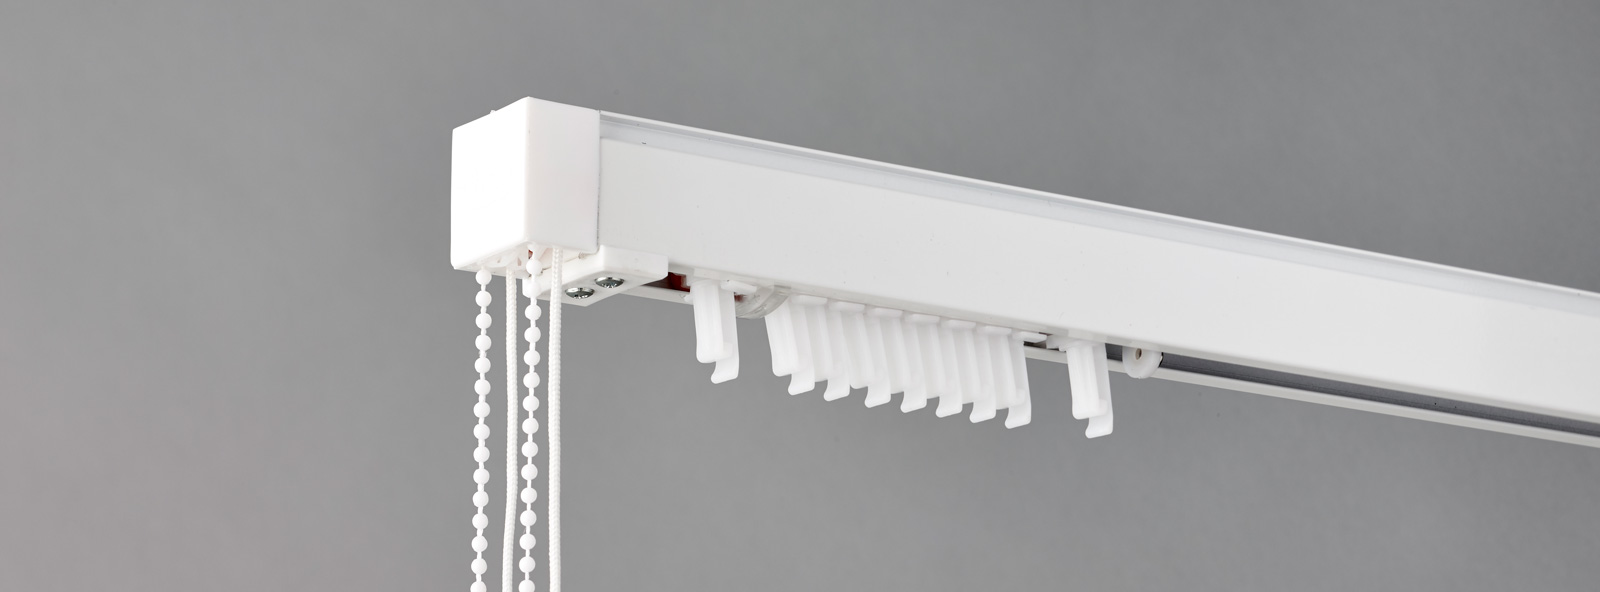 The Tiltrak 1000 Vertical Blind Headrail System